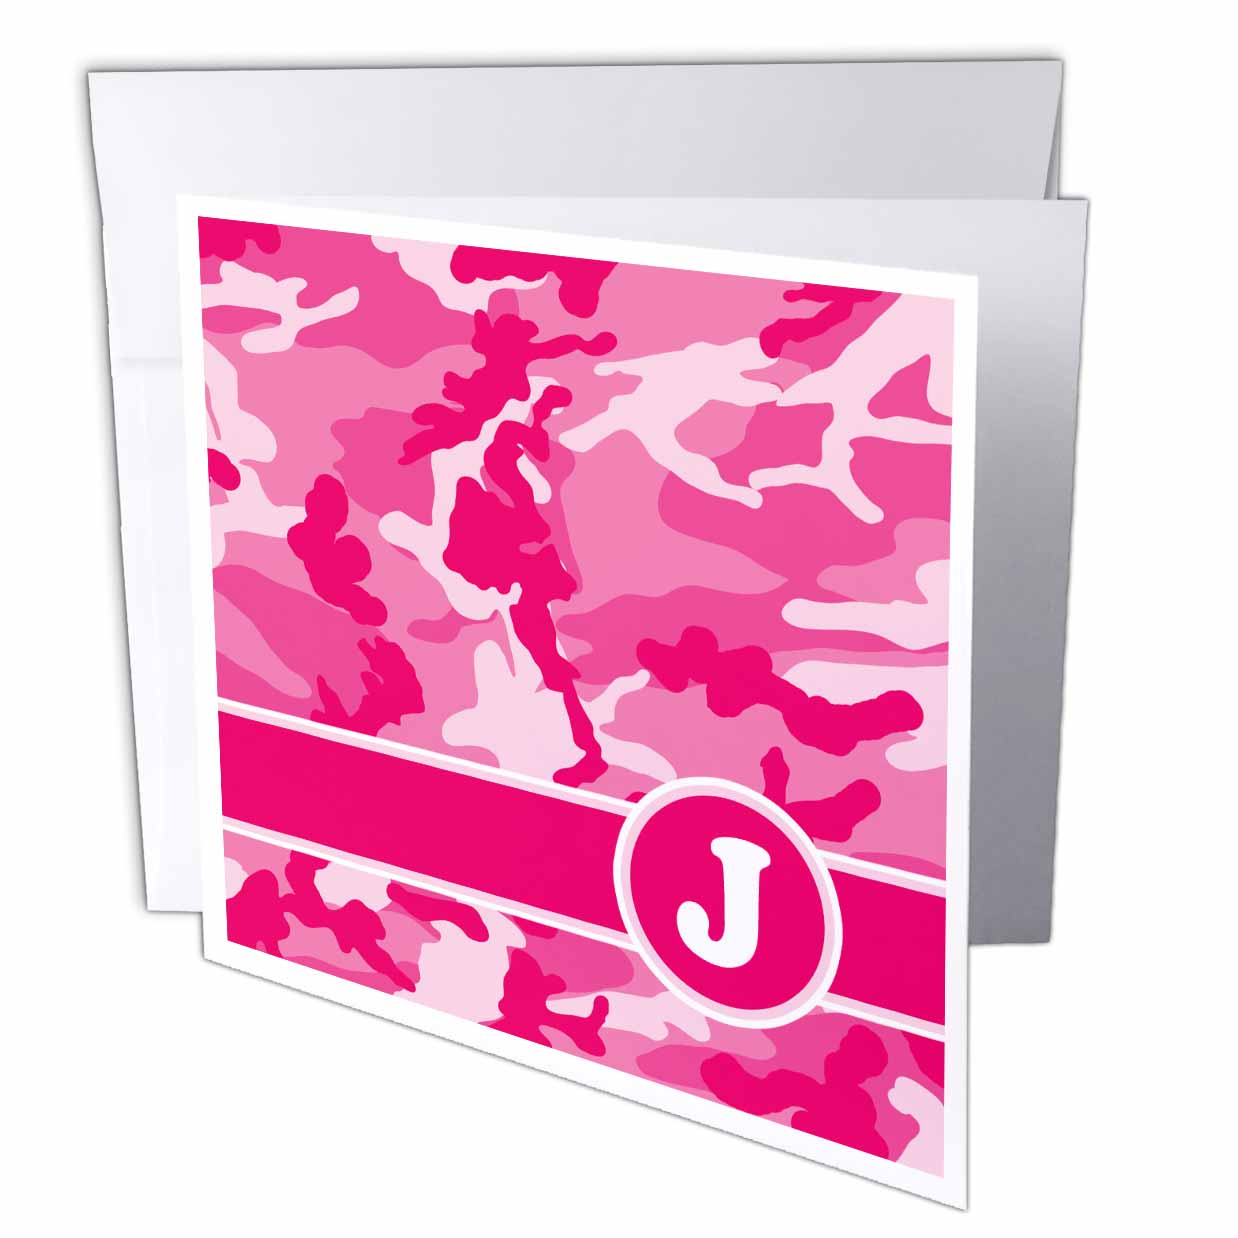 3dRose Cute Pink Camo Camouflage Letter J, Greeting Cards, 6 x 6 inches, set of 12